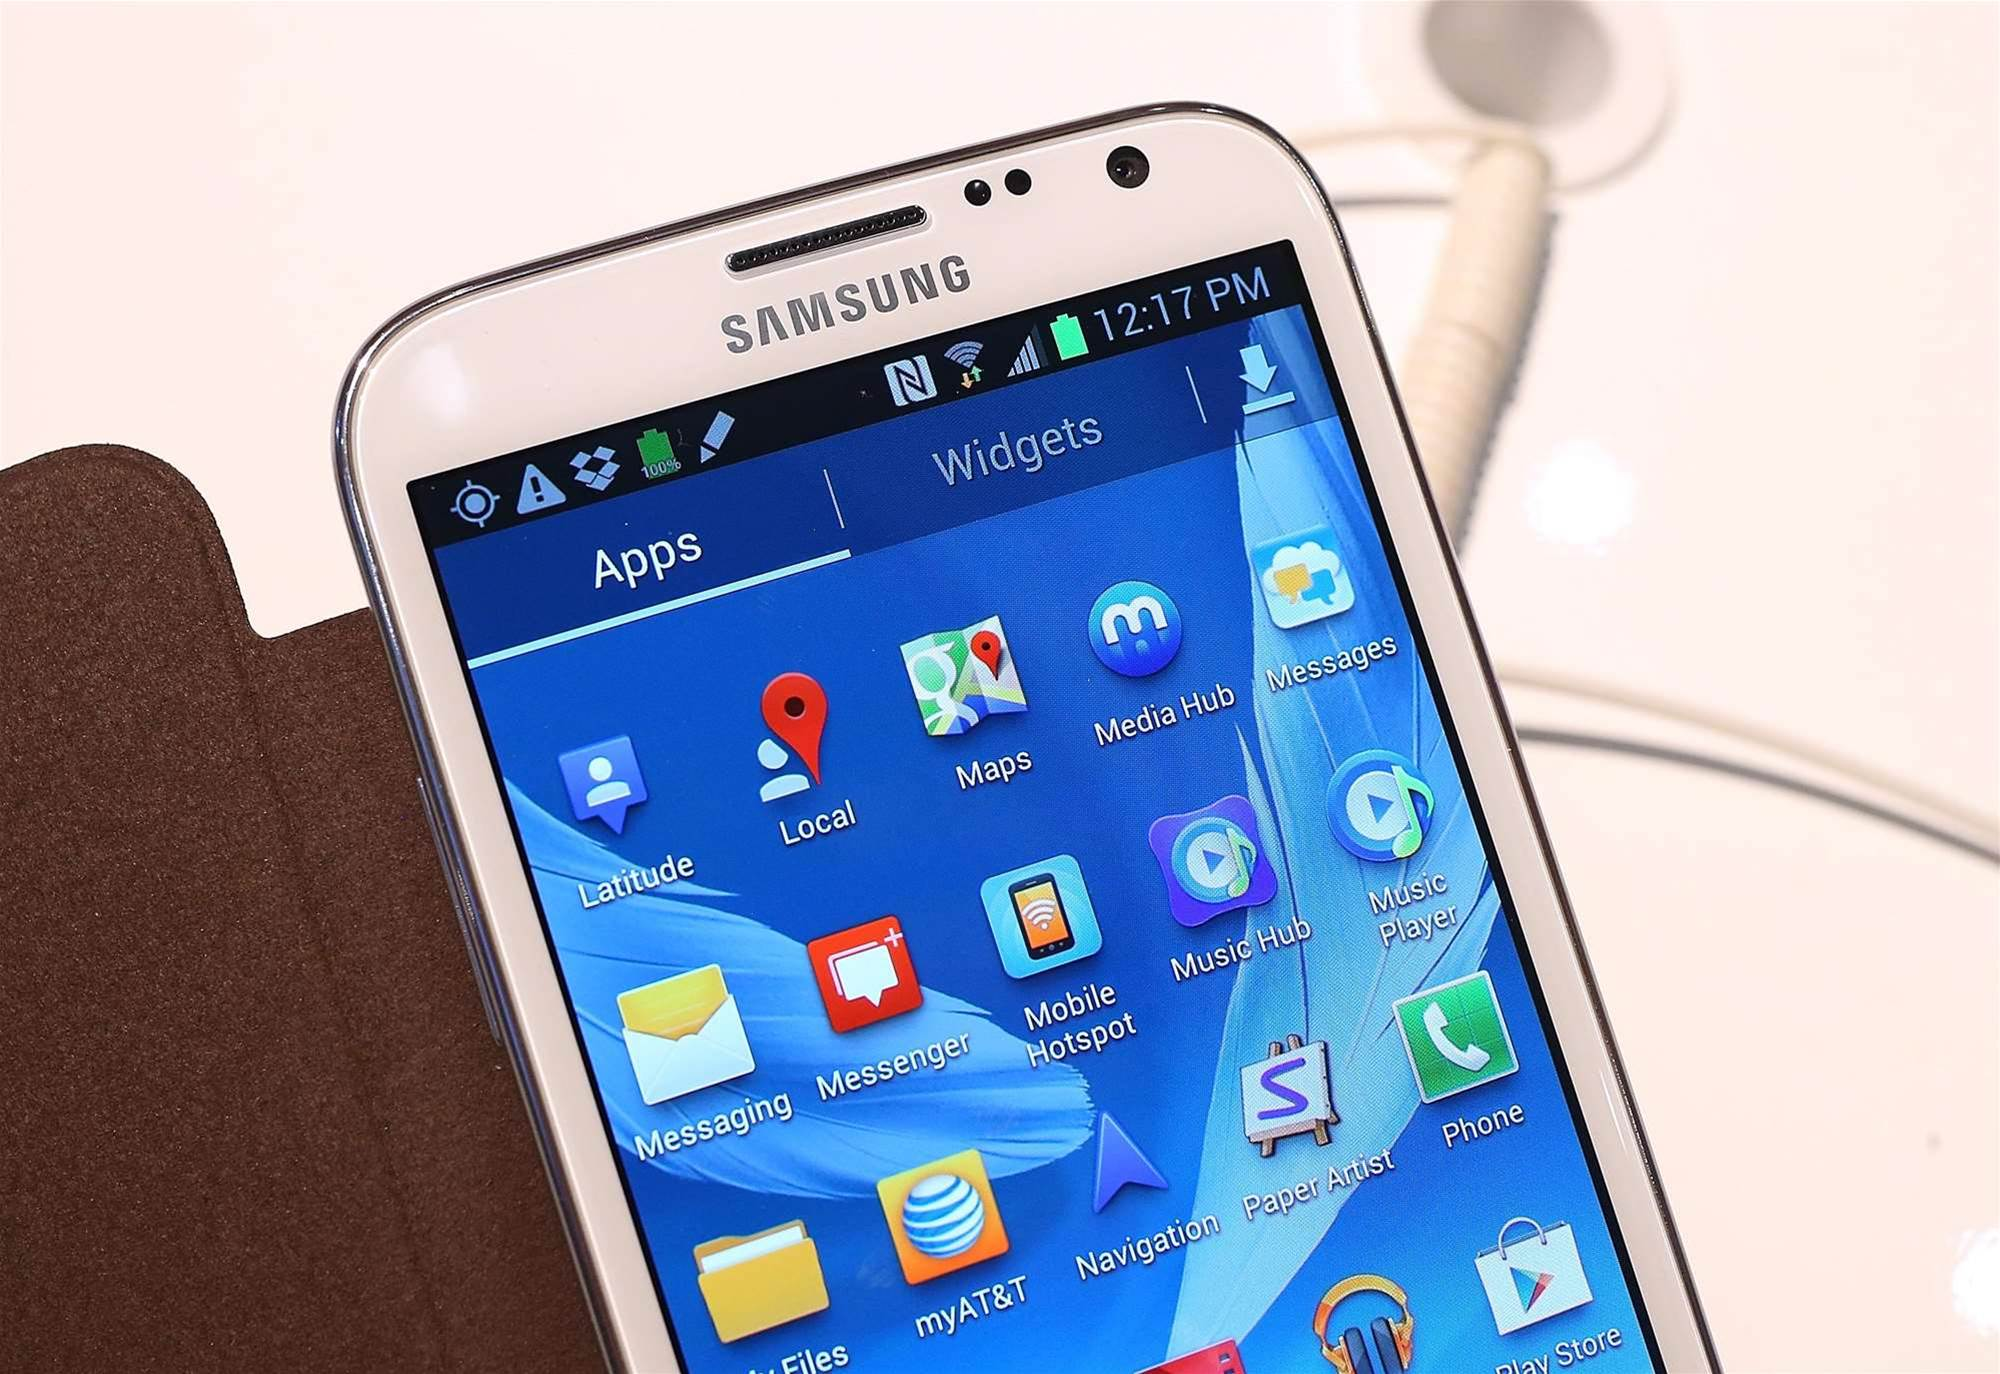 Review: Samsung Galaxy Note II